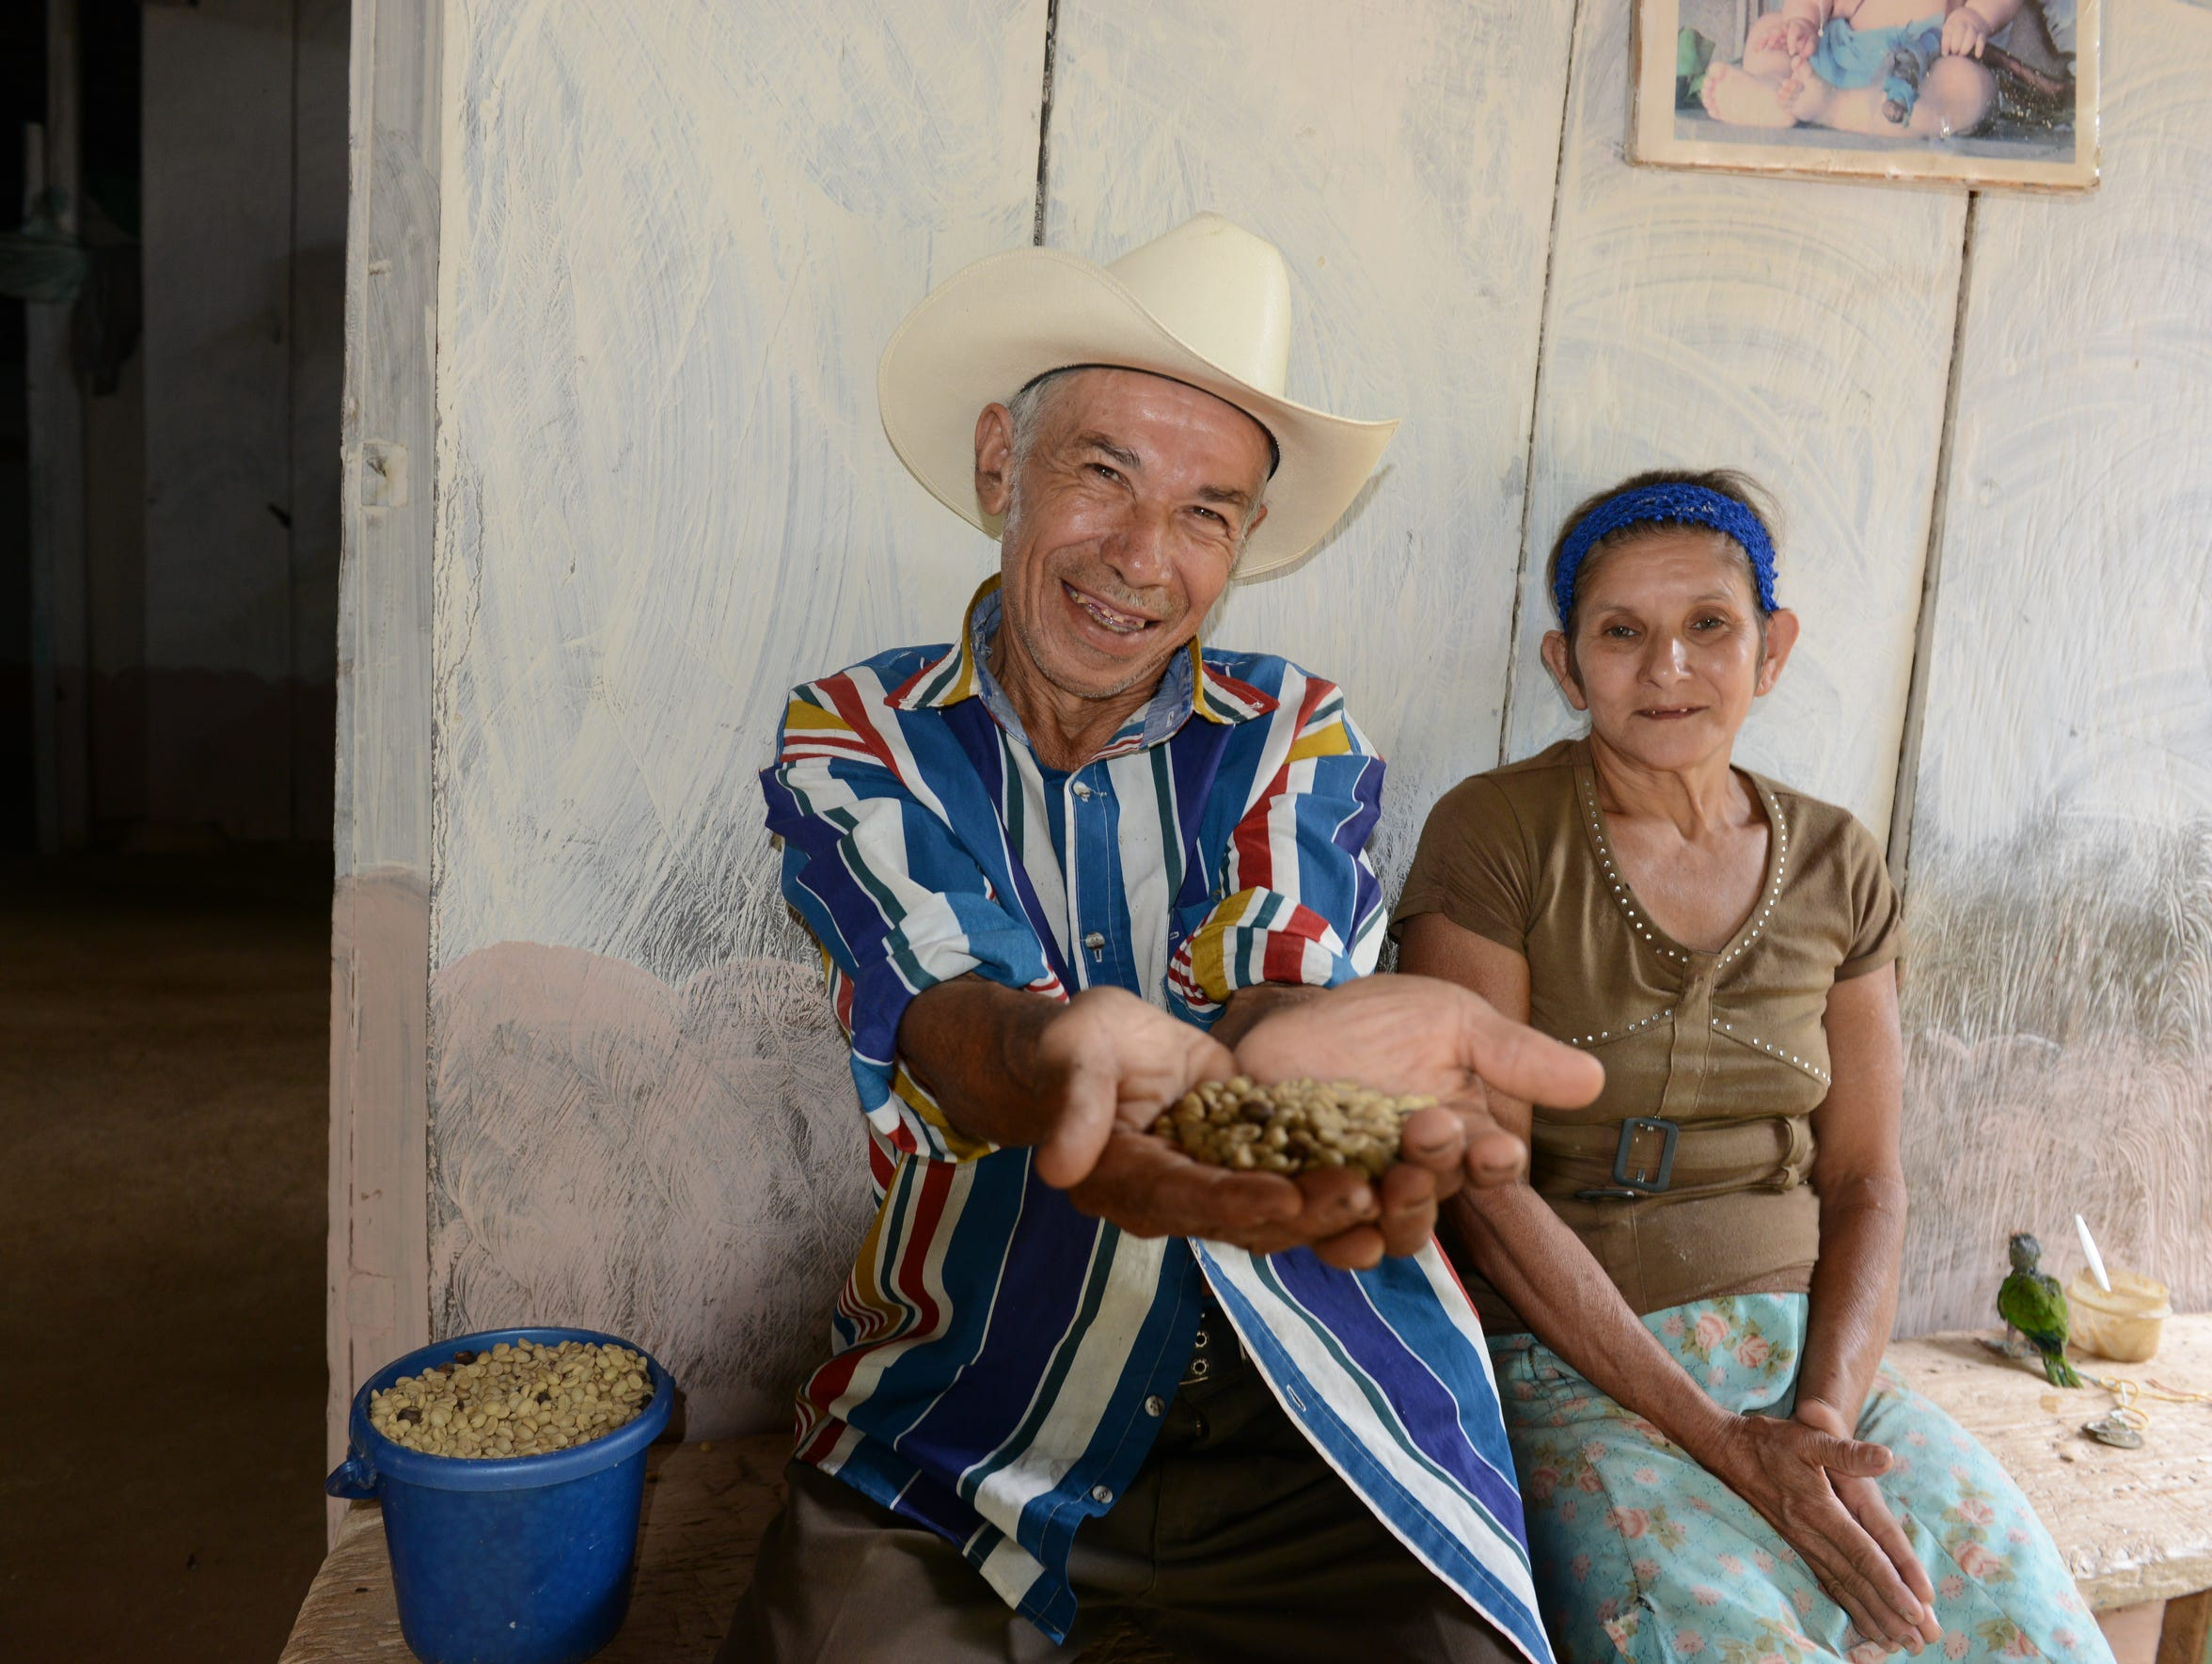 Villagers in Las Minitas grow most of what they eat